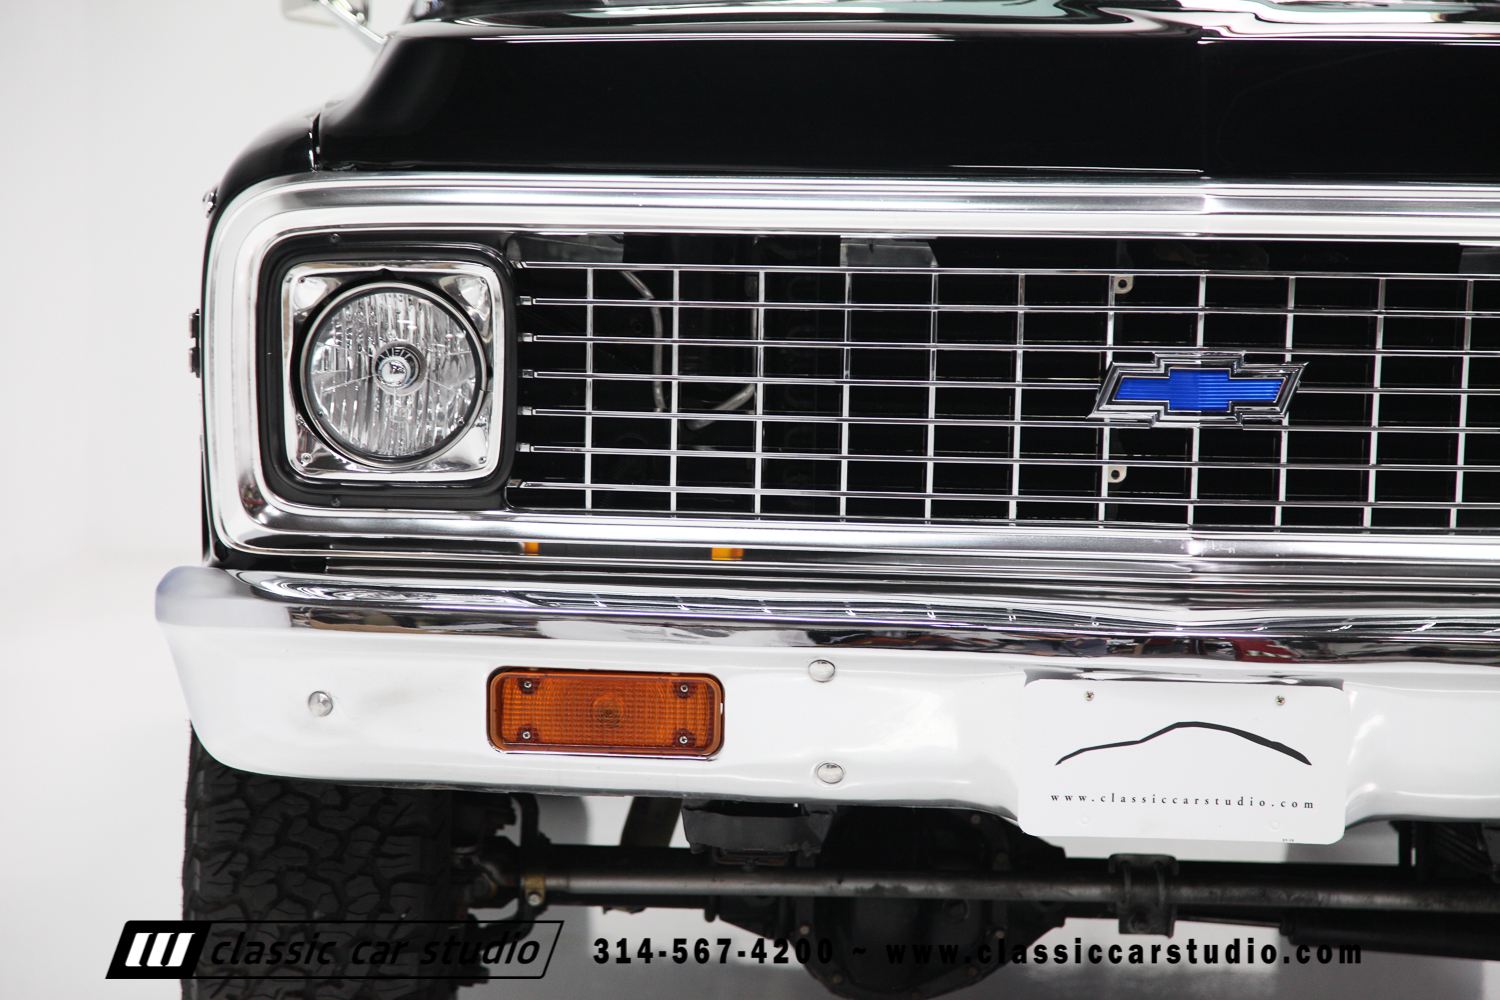 1972 Chevrolet K10 Cheyenne Classic Car Studio 1966 Chevy Super 4x4 72 3